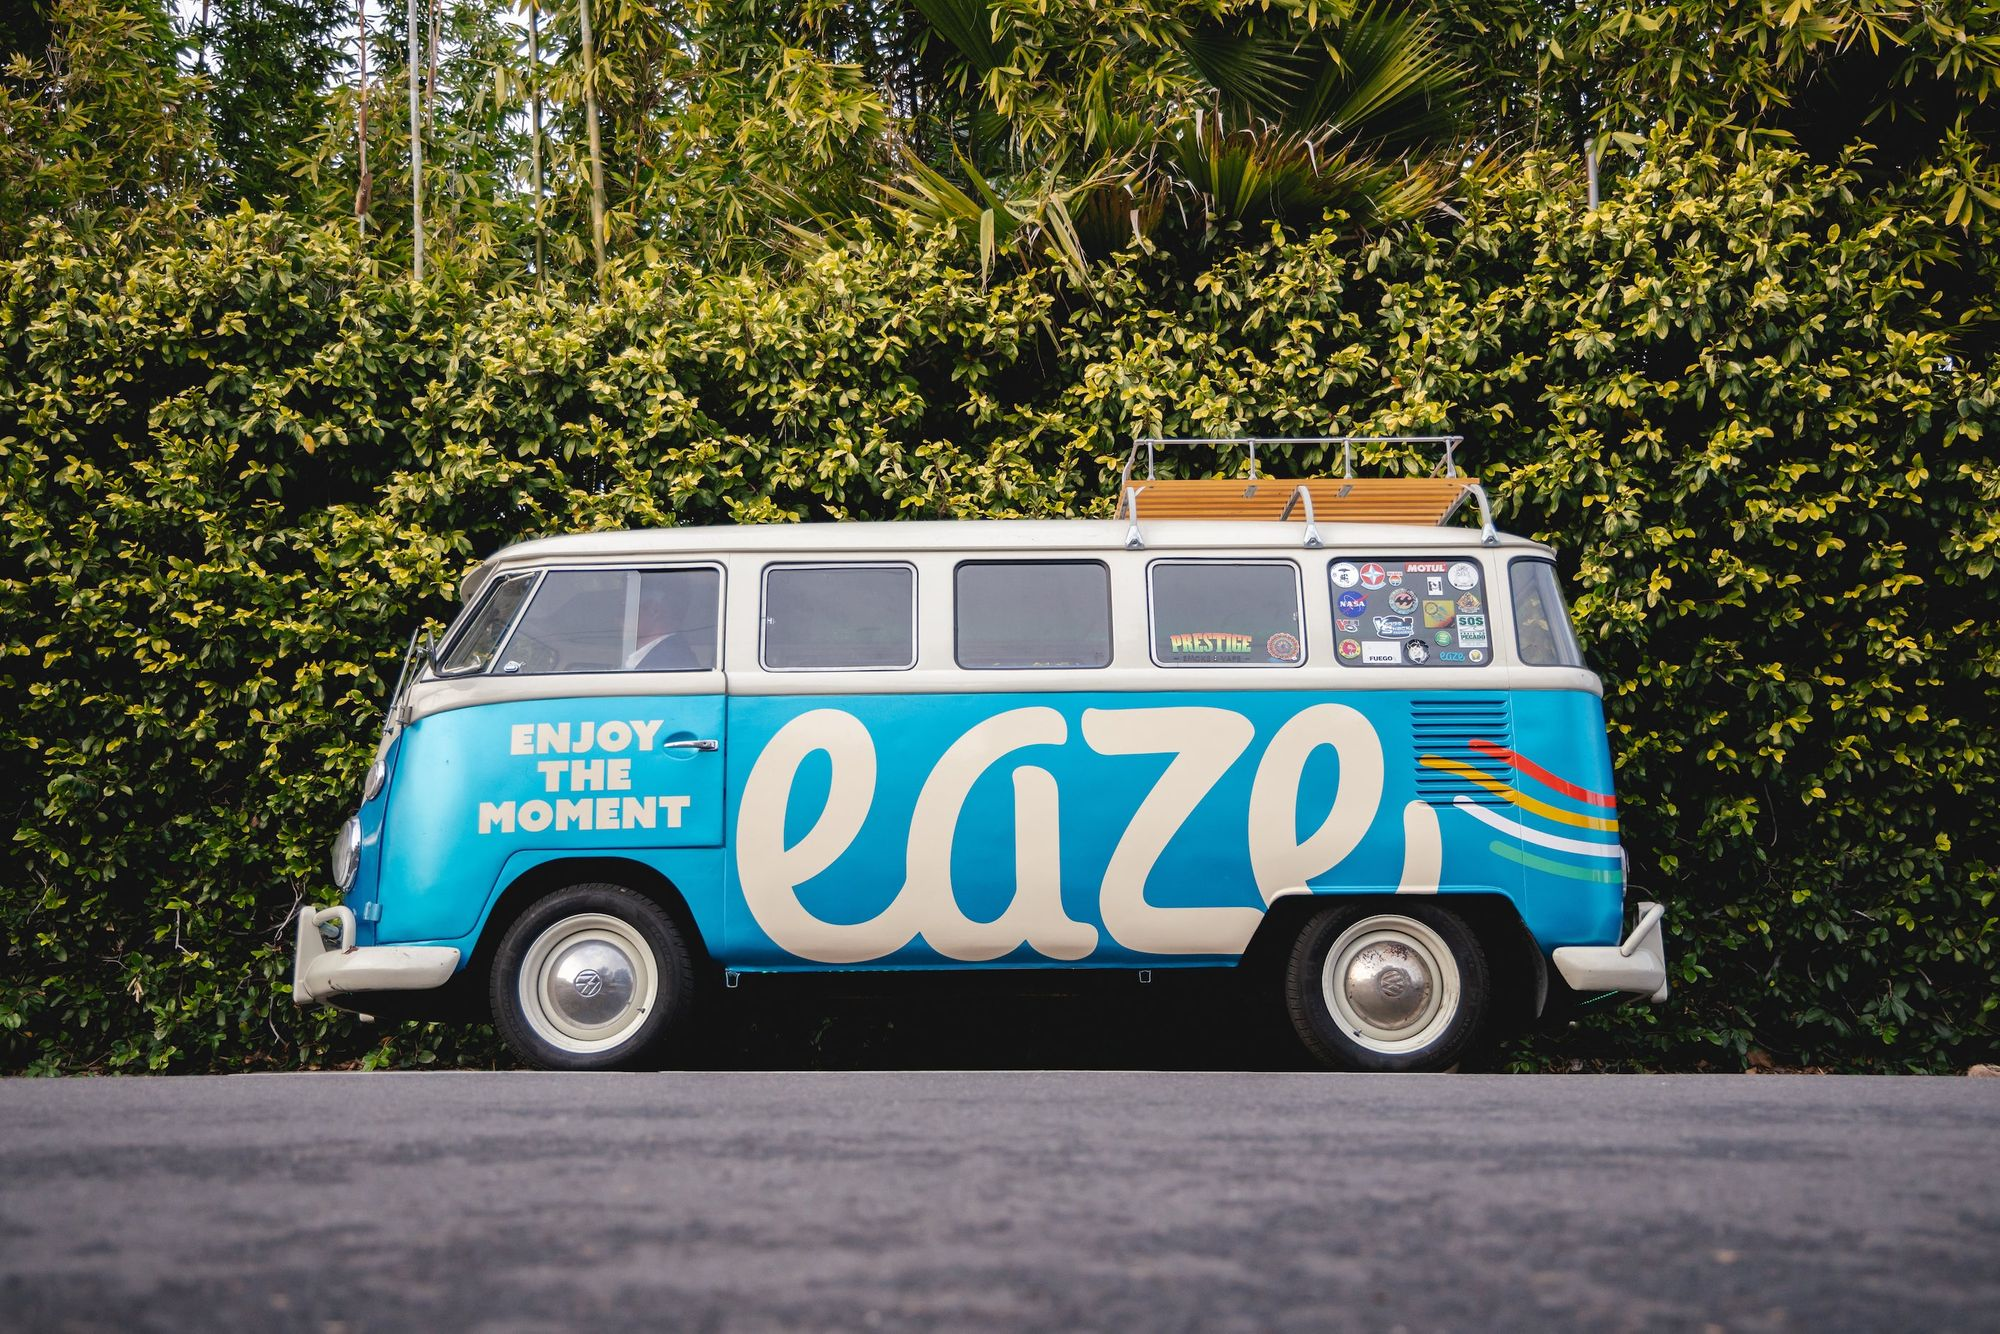 Eaze Expands Partnership with Lolli by Providing More Ways to Earn Bitcoin 🌿